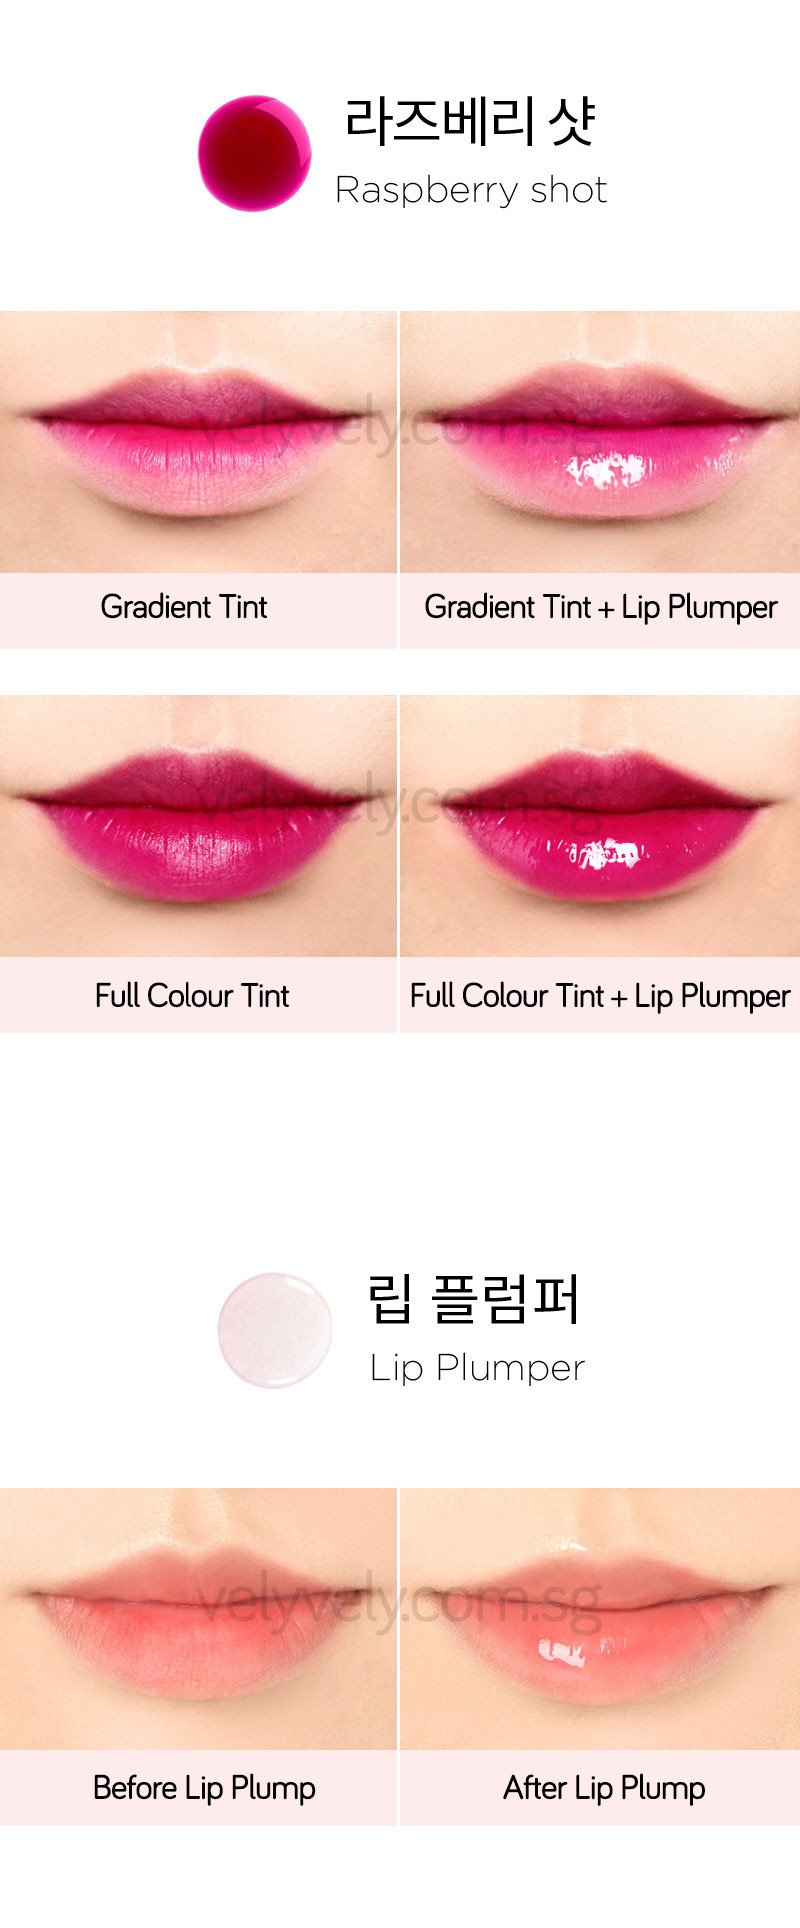 Before and after use of Korea's Cosmetic Brand, Vely Vely Water Tint Lip Plumping Duo